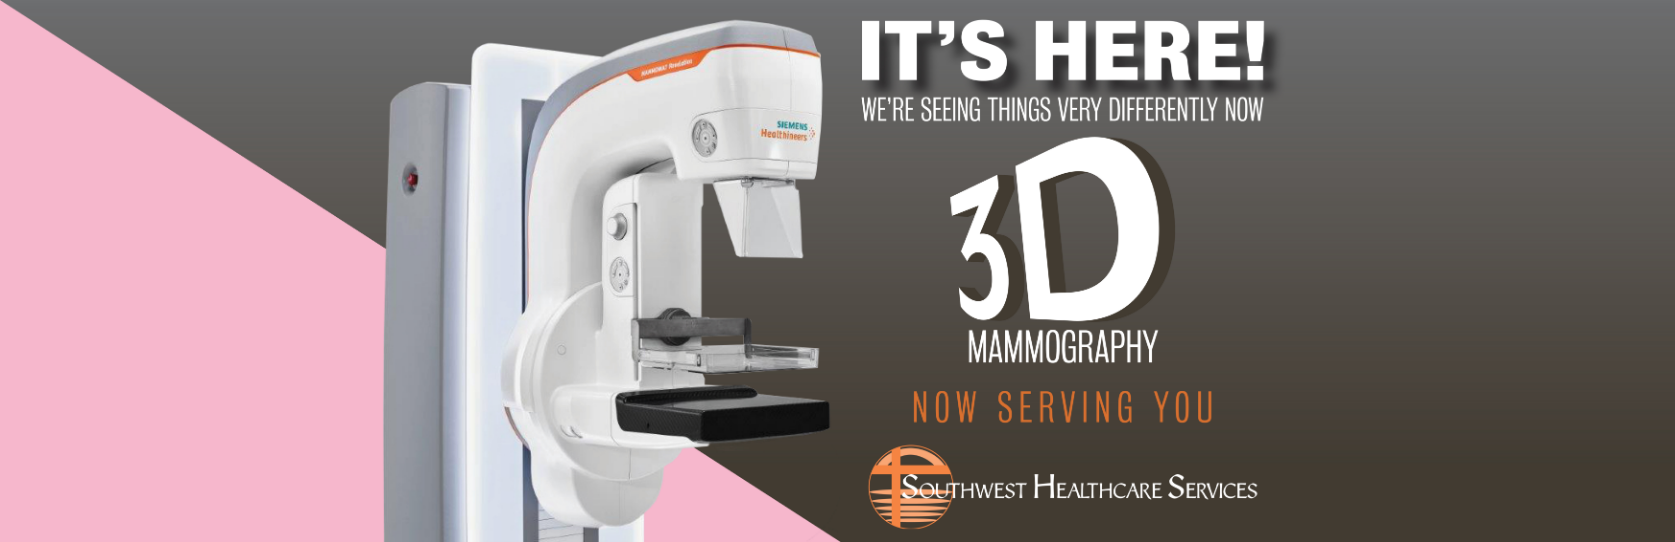 3D Mammo IT'S HERE